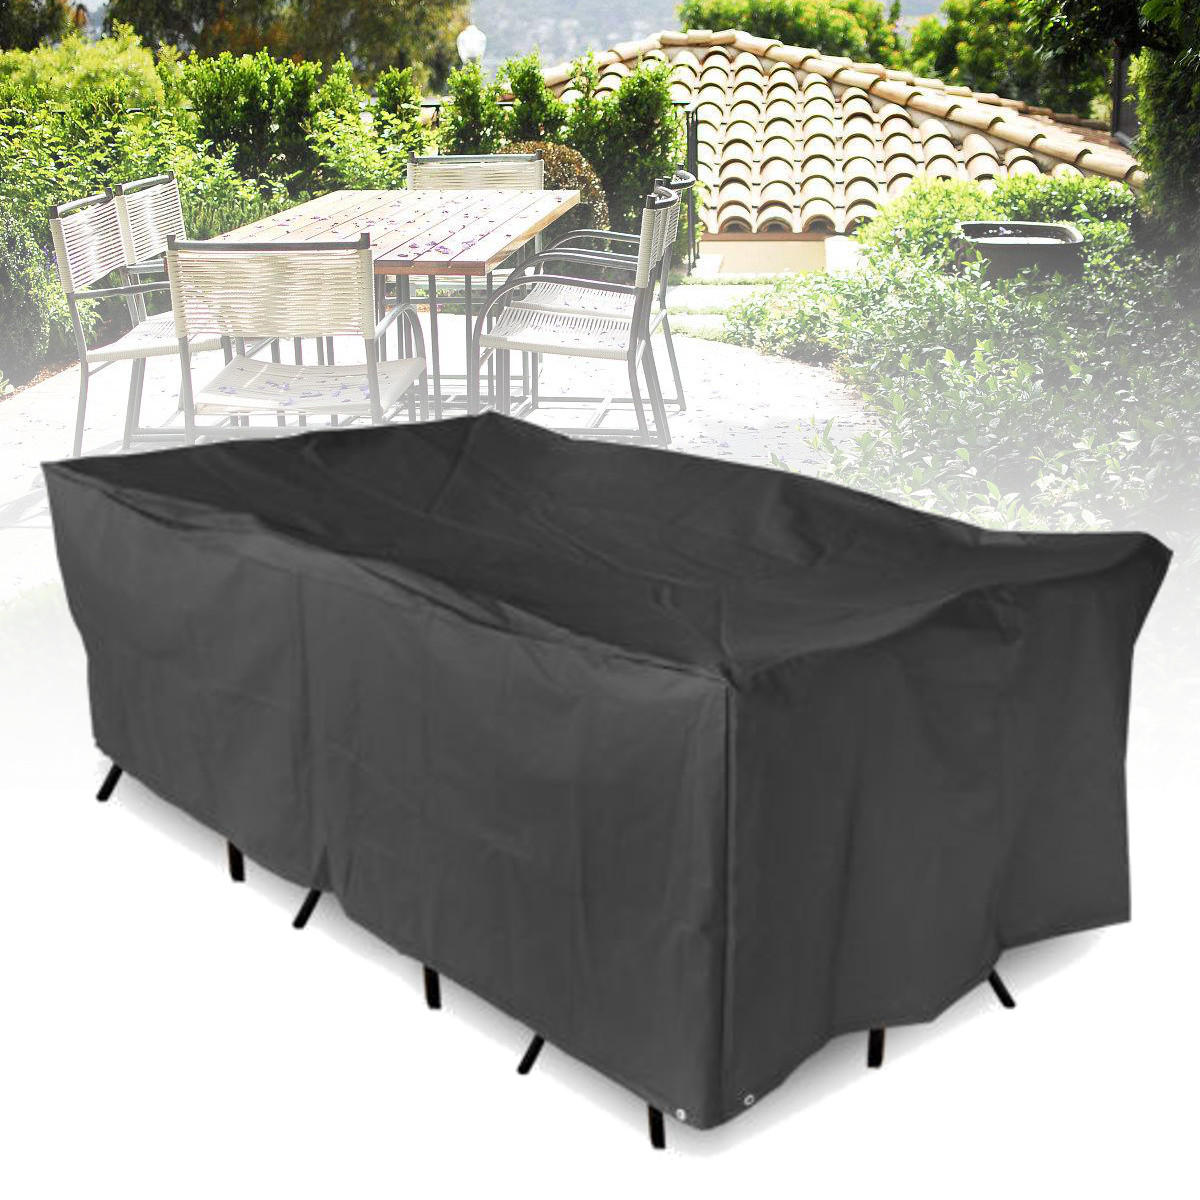 Outdoor Furniture Waterproof Cover Garden Patio Table Chair Rectangular Shelter Anti-UV Dust Protector